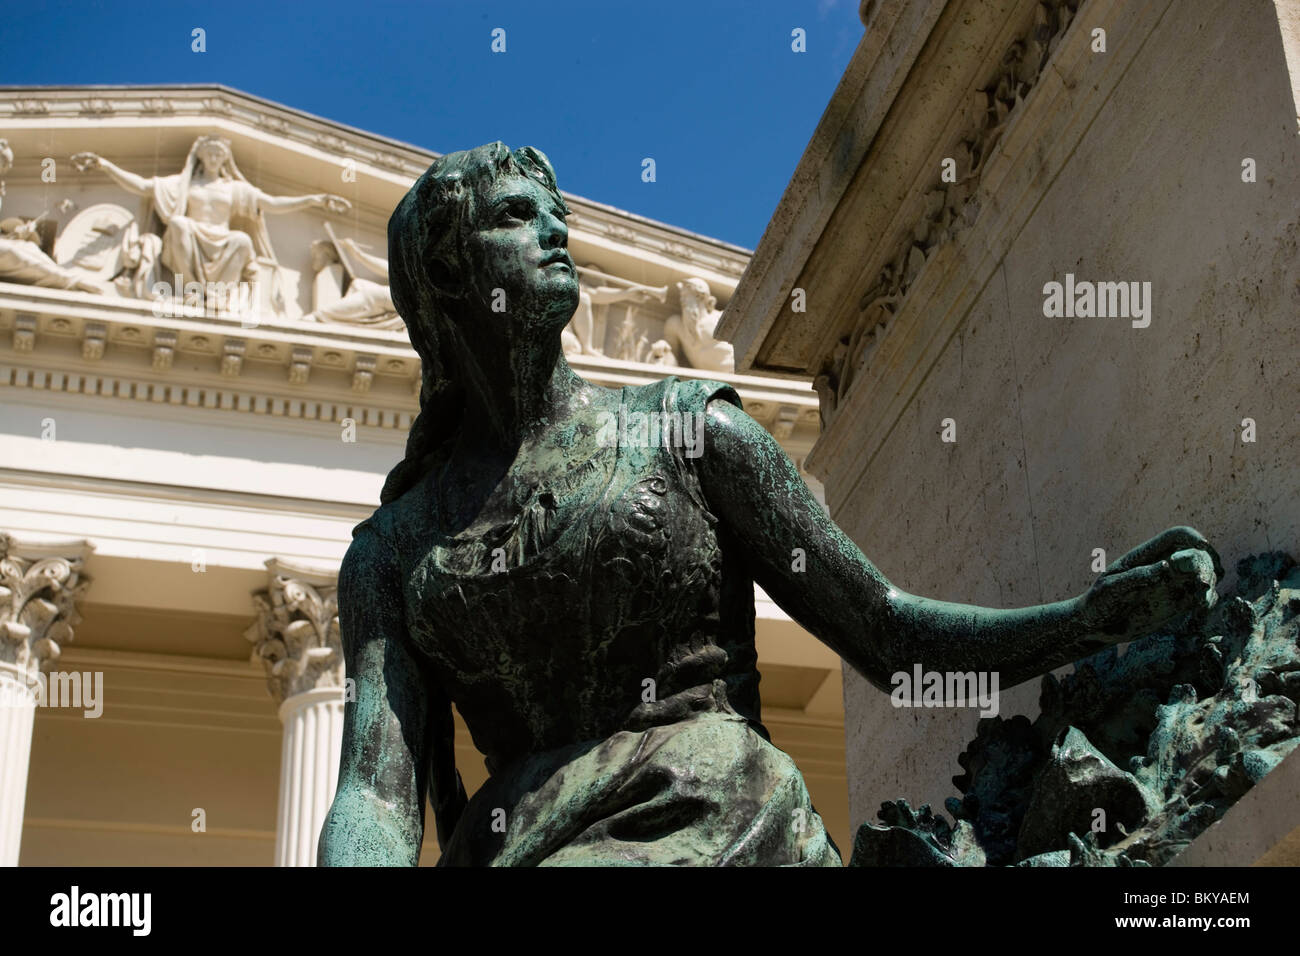 Arany Monument and Hungarian National Museum, Monument to Poet János Arany in front of Hungarian National Museum, Stock Photo